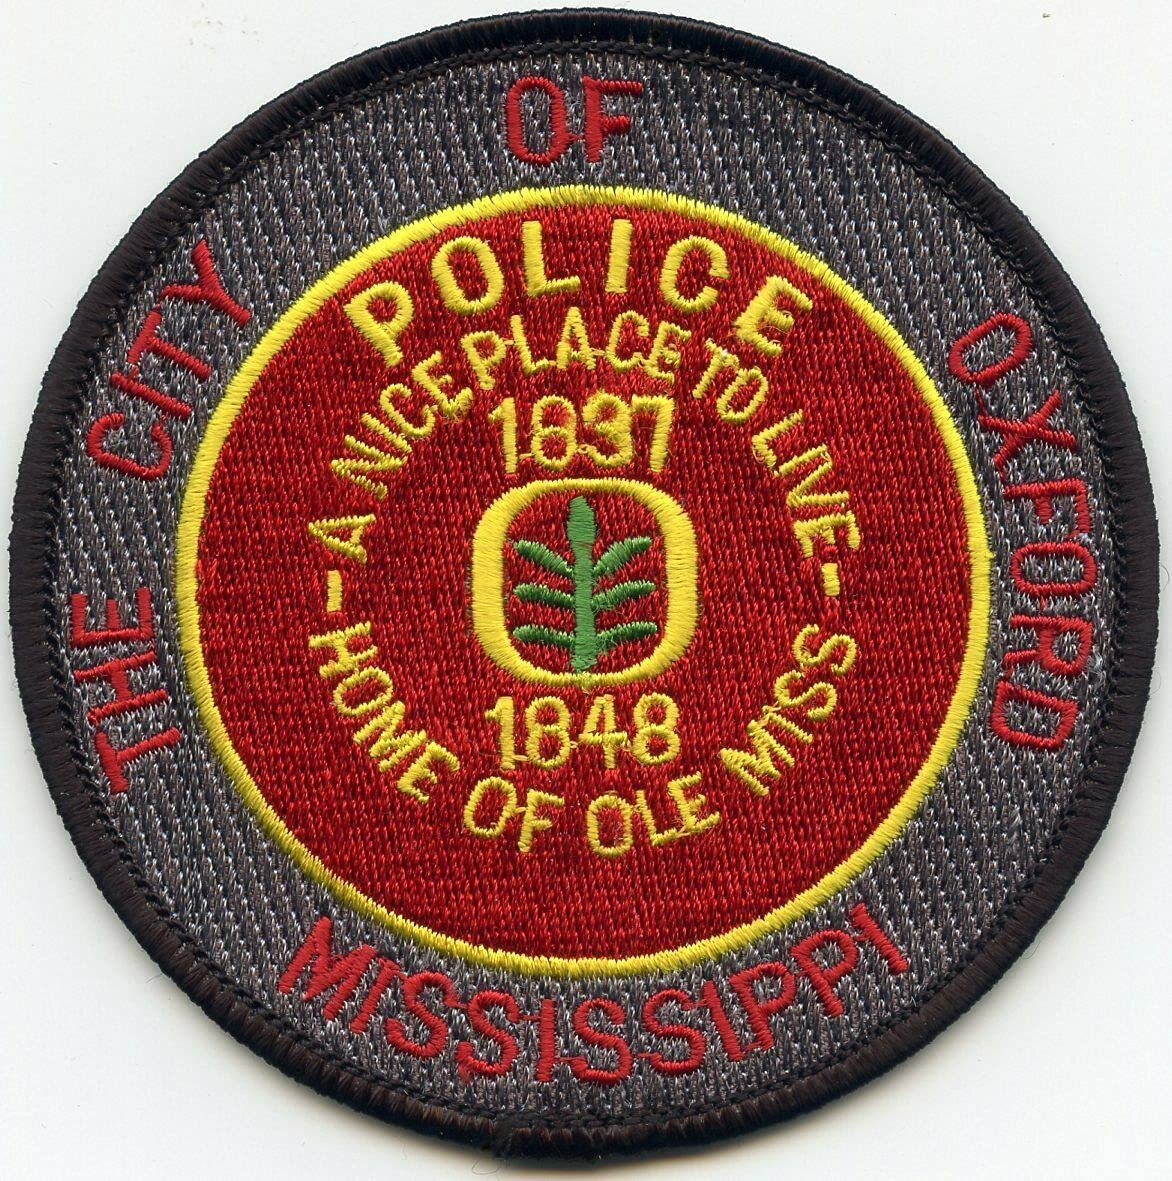 by SFI Max 83% OFF Oxford Mississippi MS Home Max 85% OFF Police Patch Miss of Ole